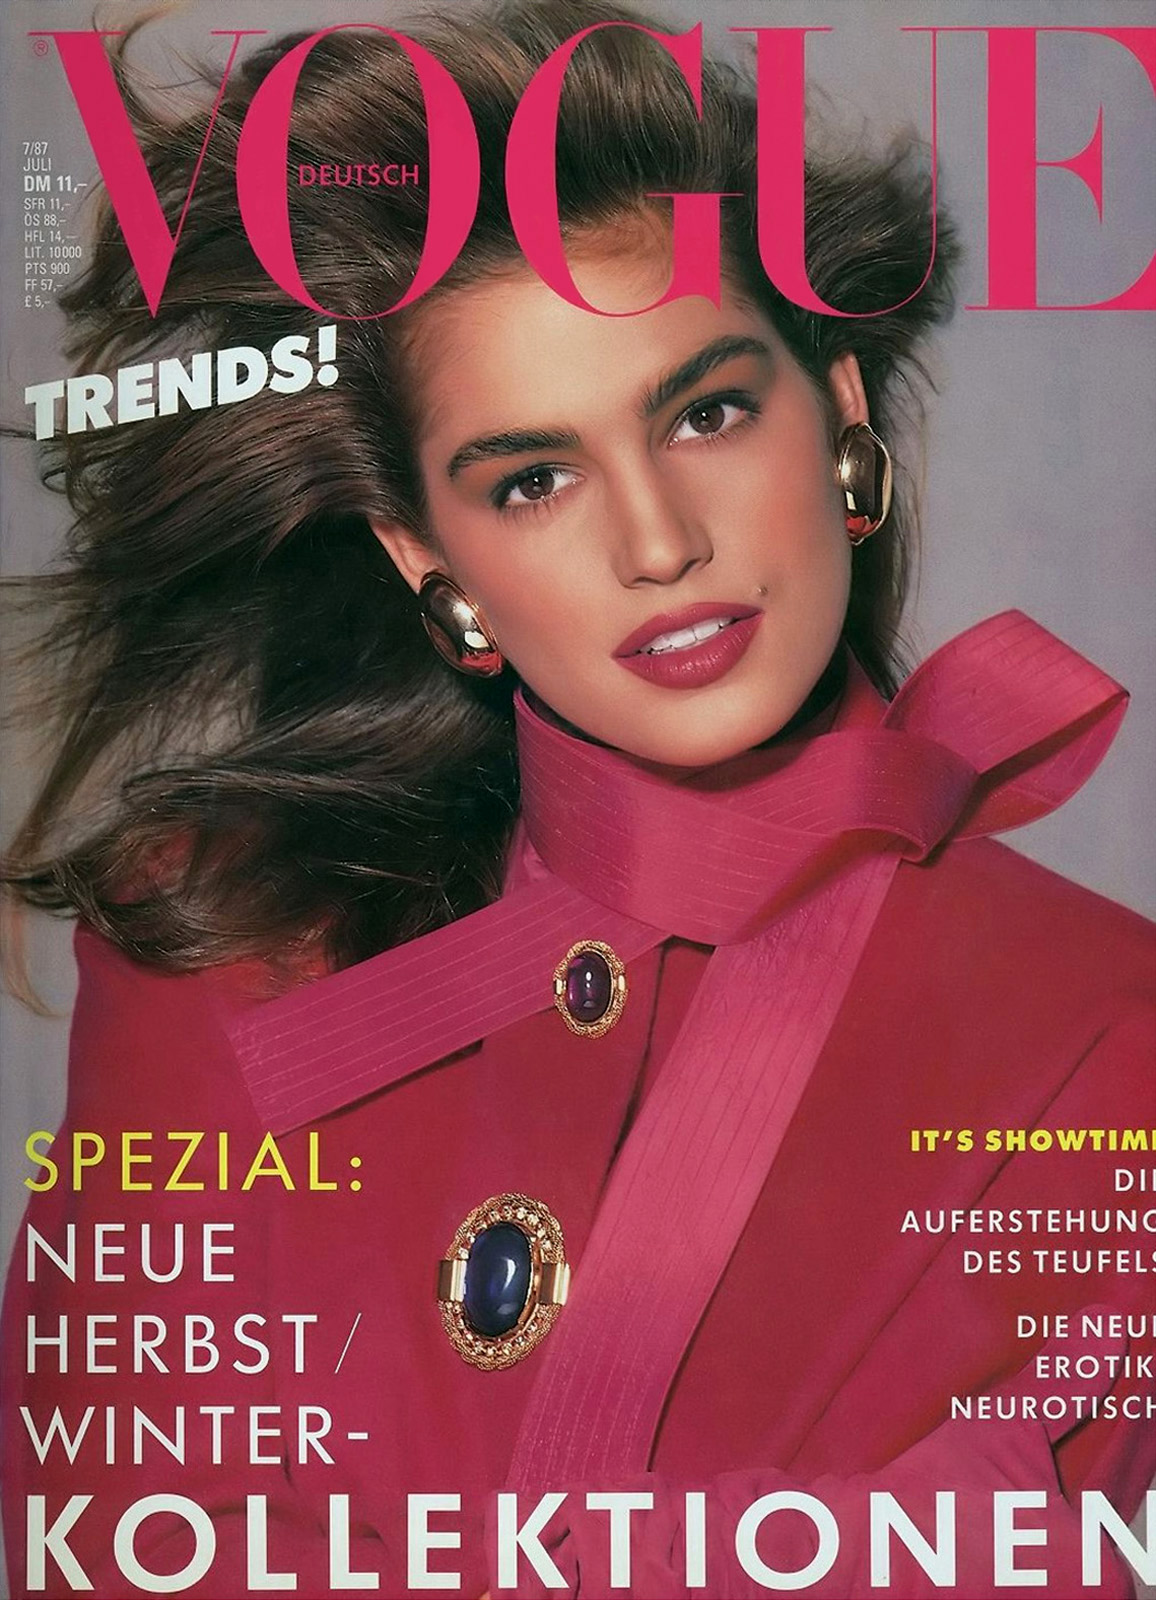 http://1.bp.blogspot.com/-pNnYGMDexGw/TZafRmx2S7I/AAAAAAAACrY/5p_no1rIjqs/s1600/1600-CINDY-JULY-87-DUTCH-VOGUE-COVER2.jpg